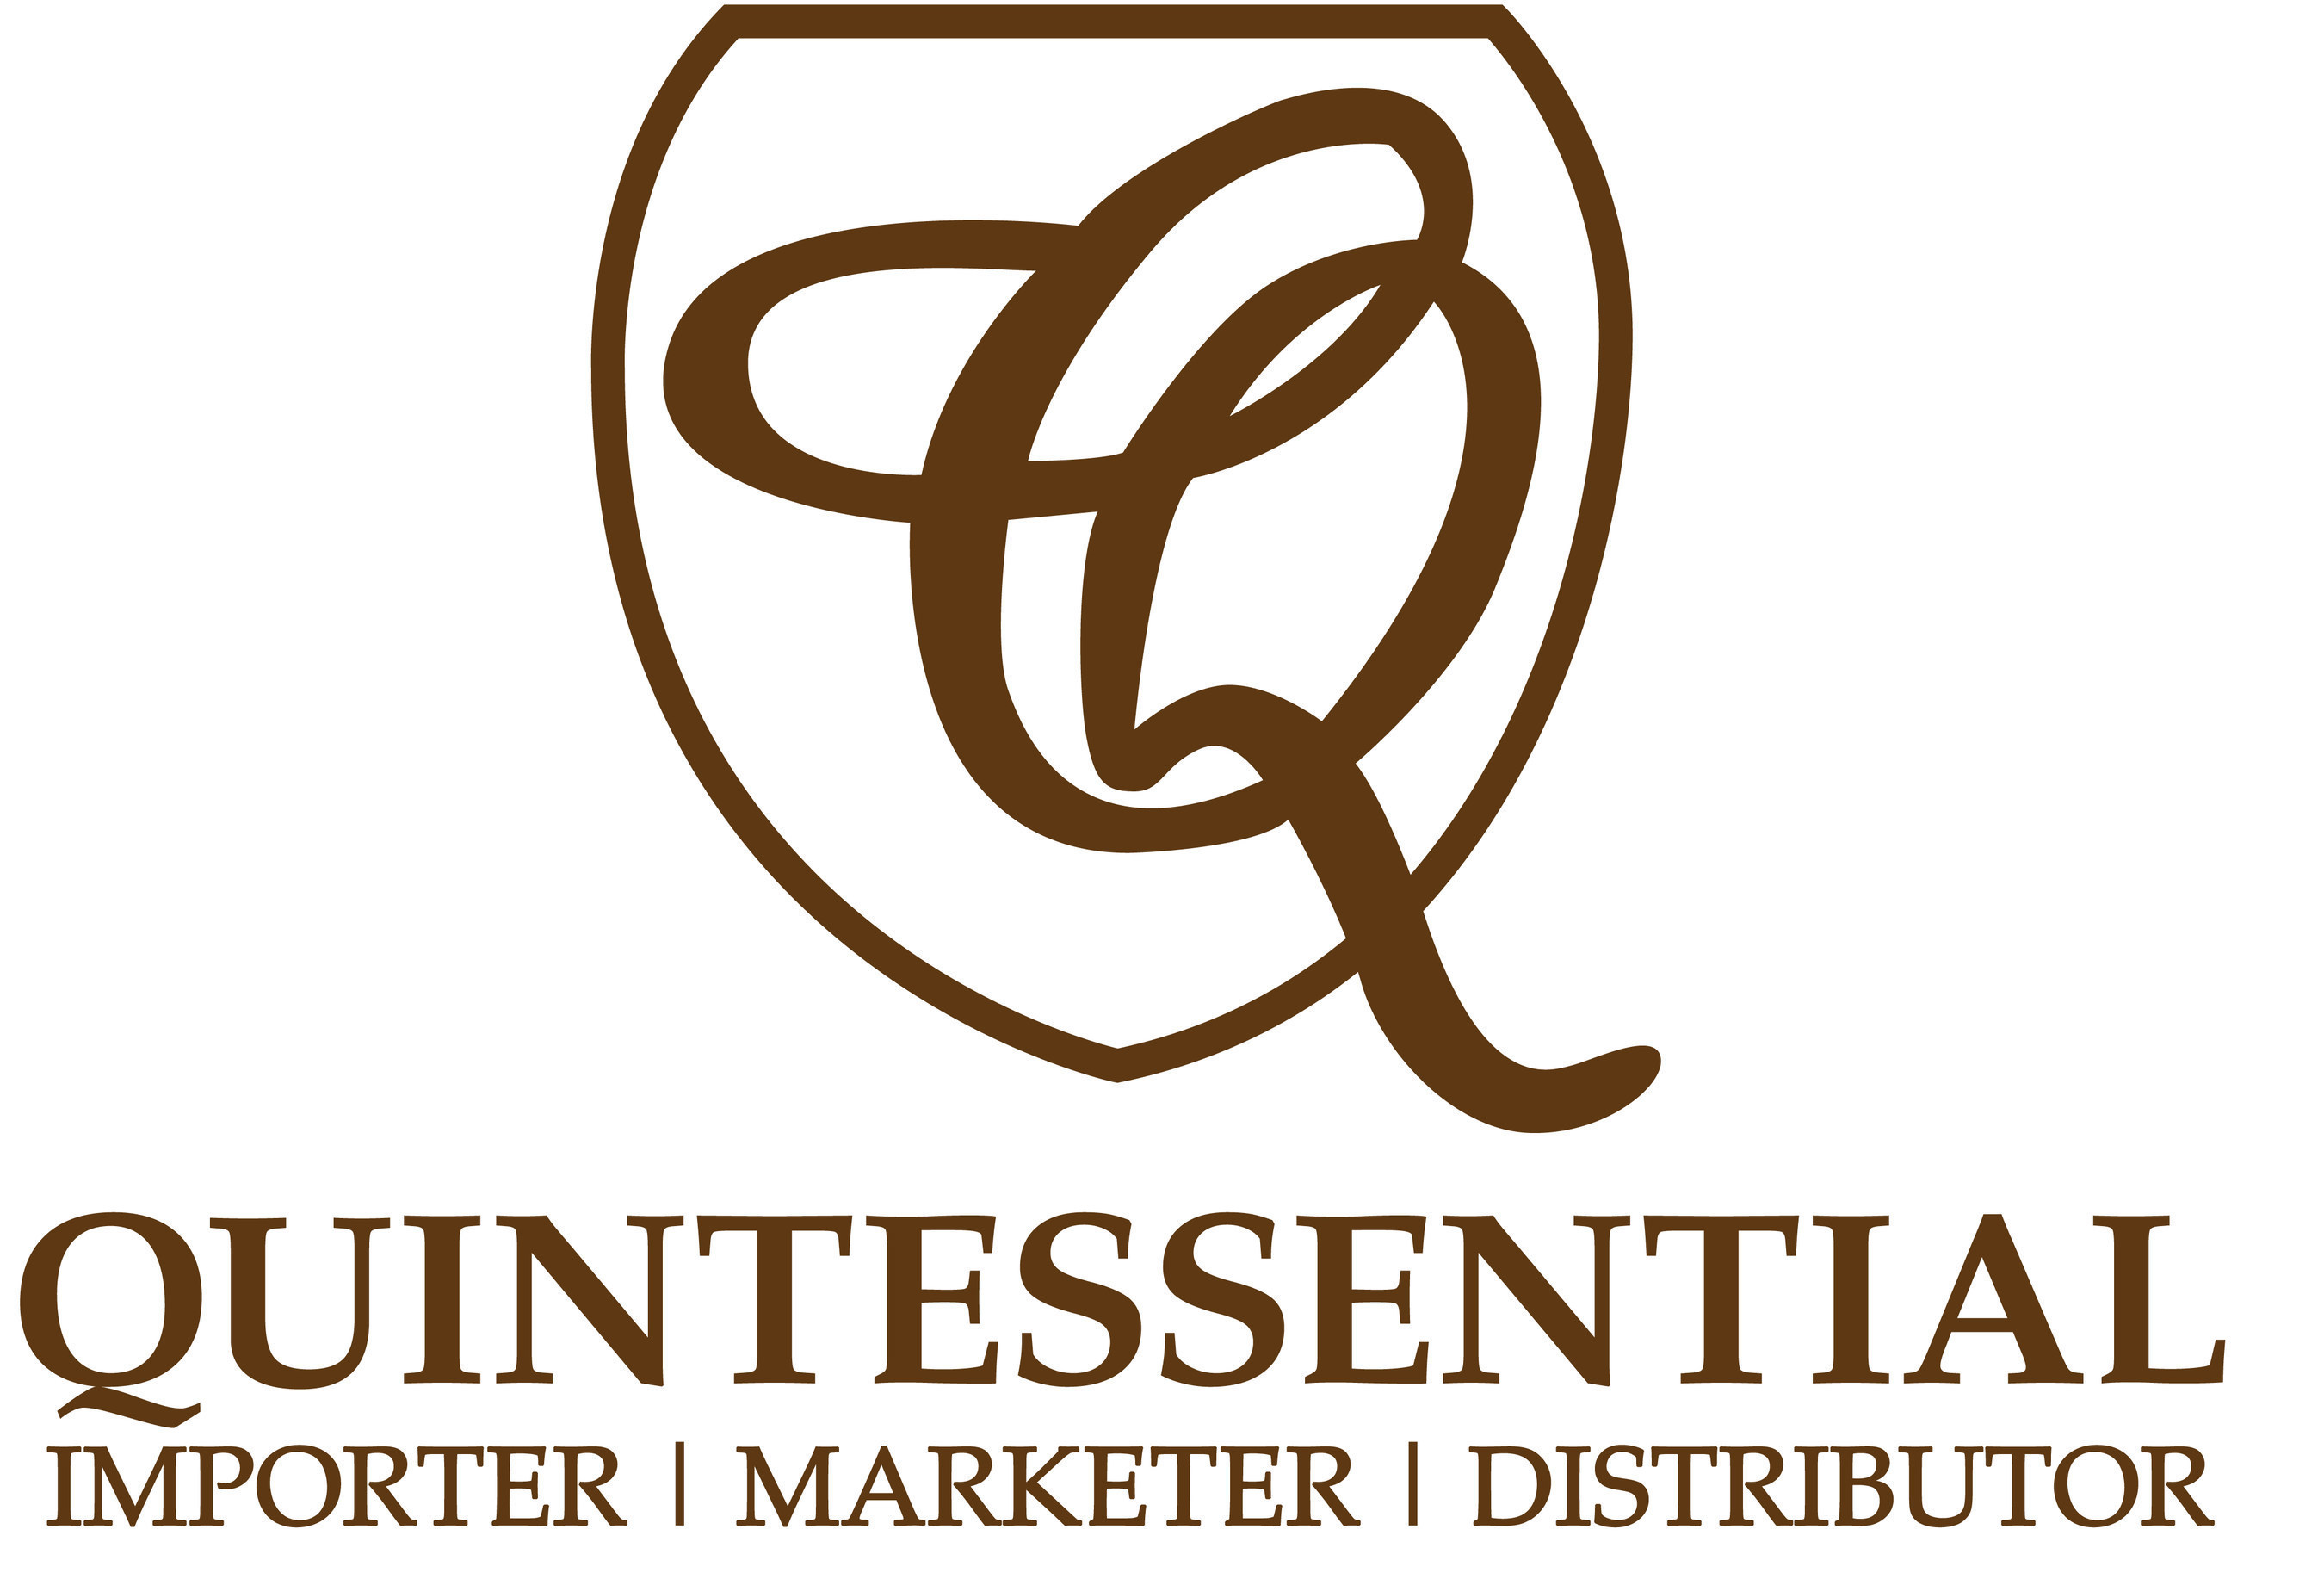 quintessential in elite territory four wine brands cited as quintessential in elite territory four wine brands cited as hot prospects